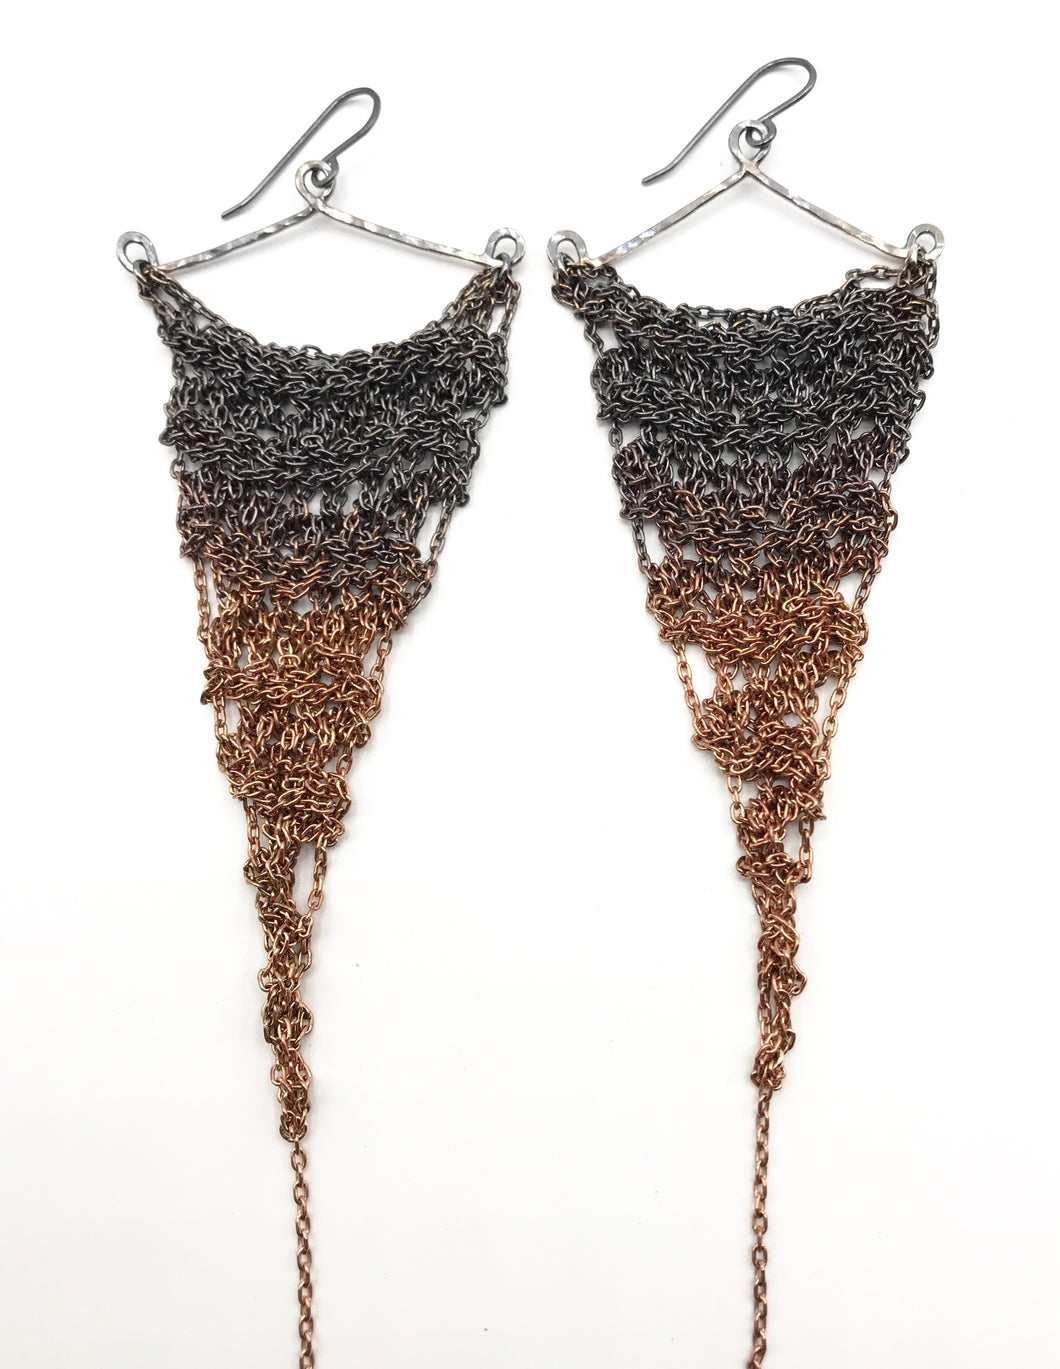 XL silver and copper ombré earrings